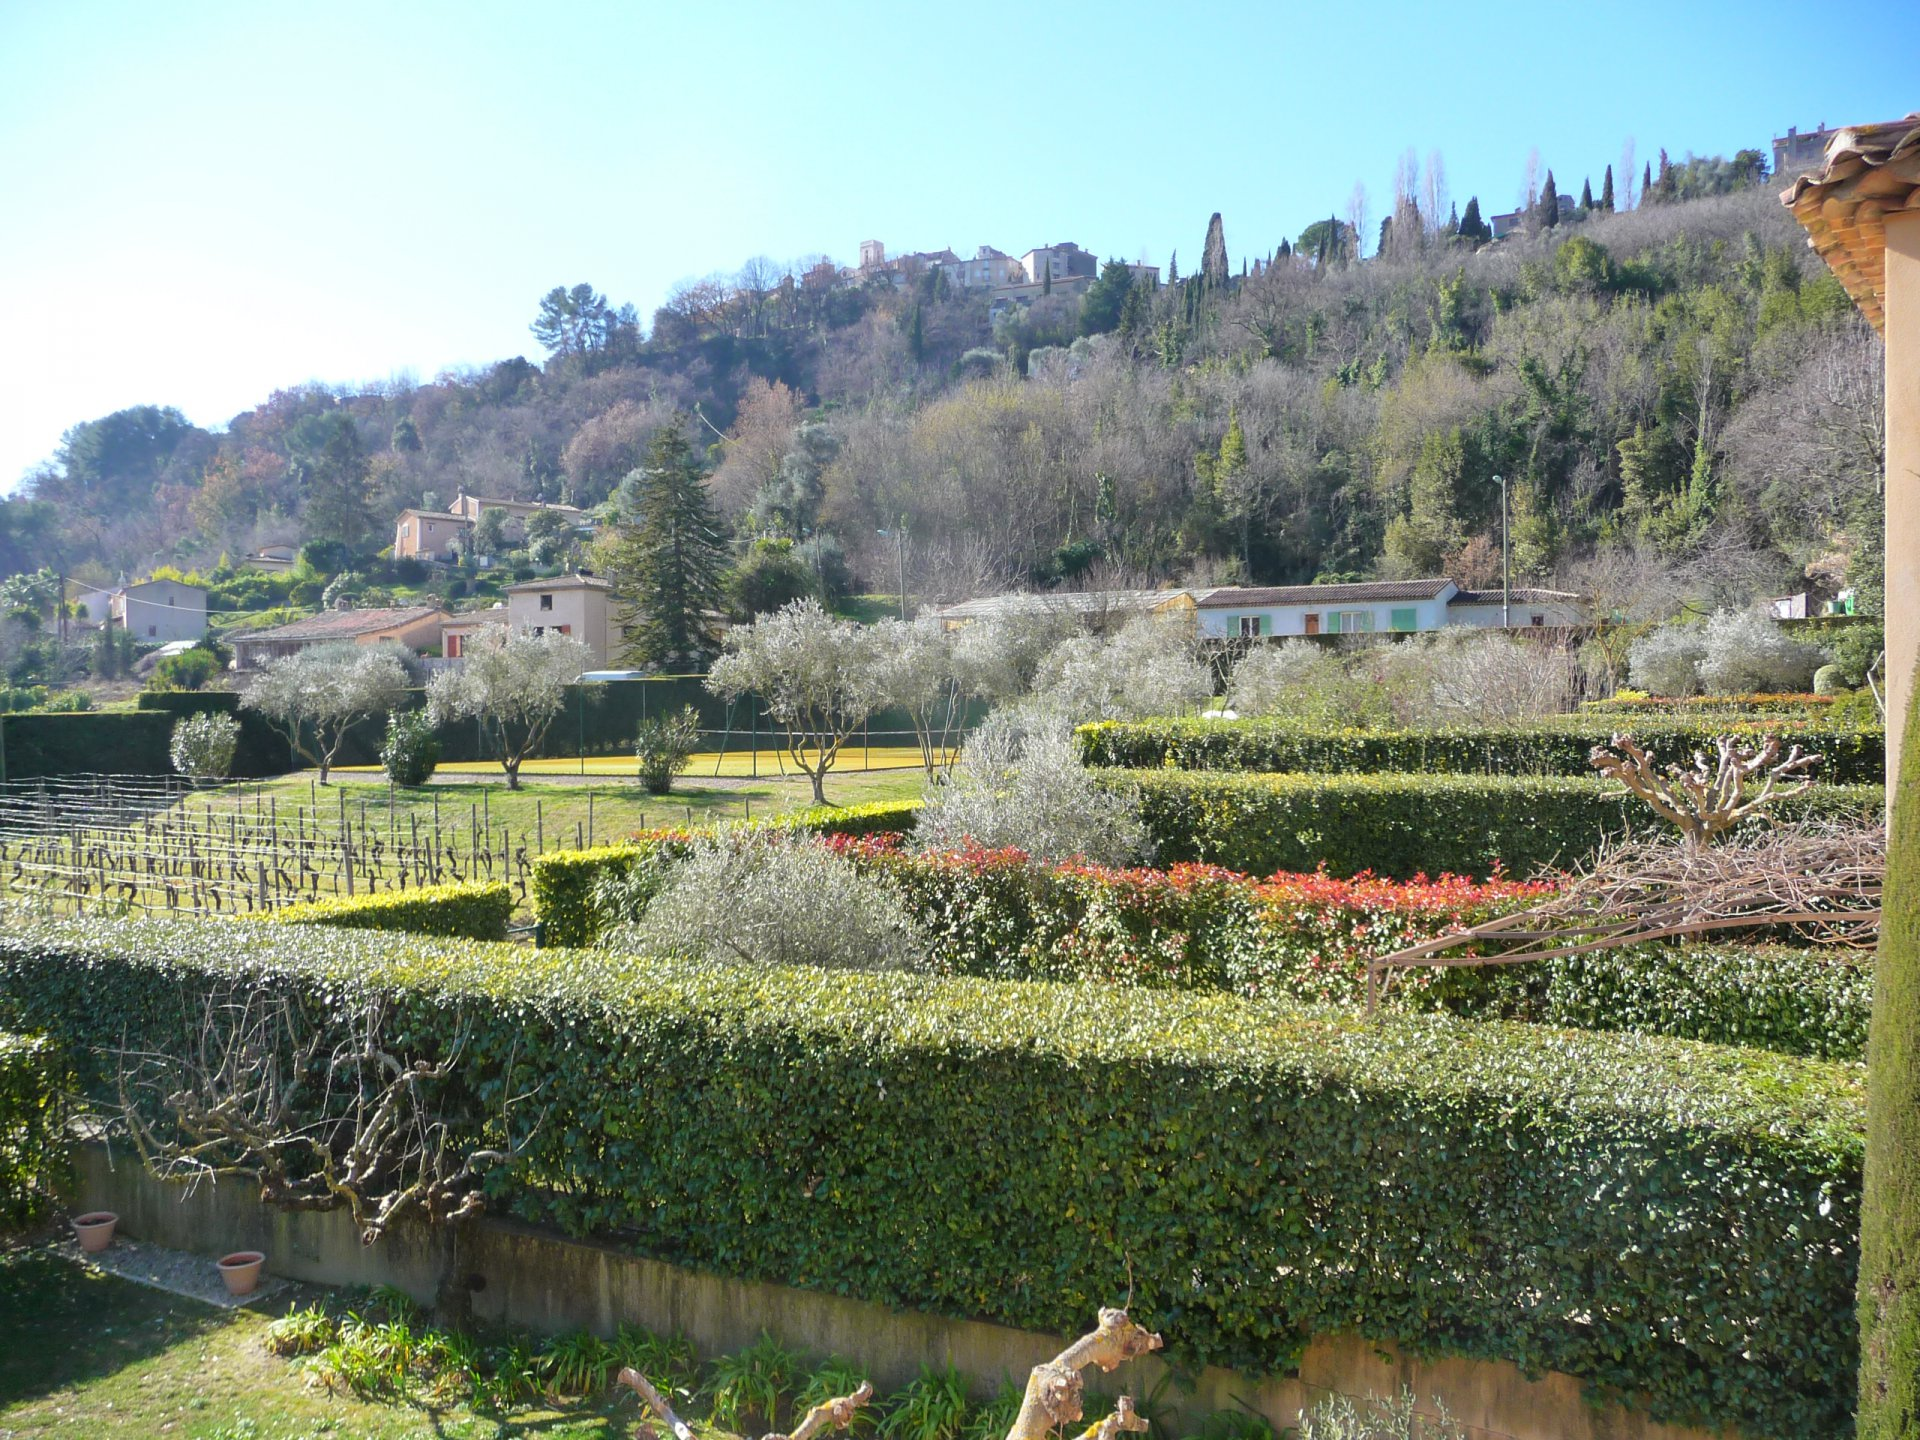 Saint-Paul de Vence, close to the village